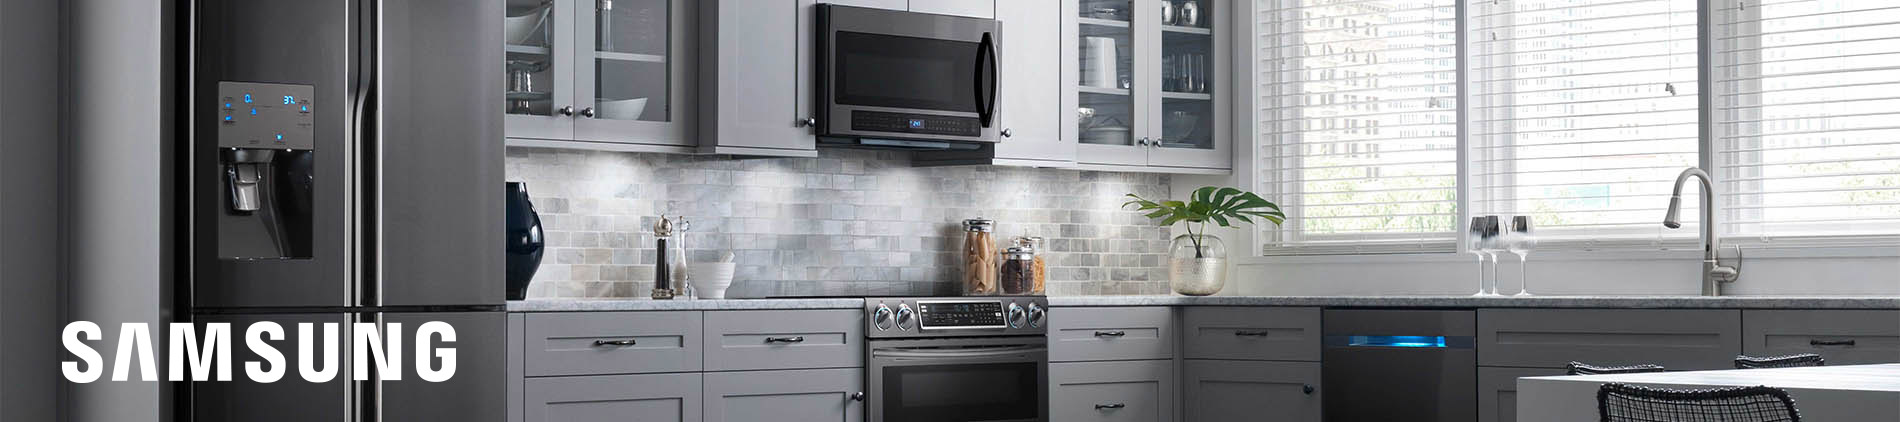 Samsung, Black, Stainless, Kitchen, Urban